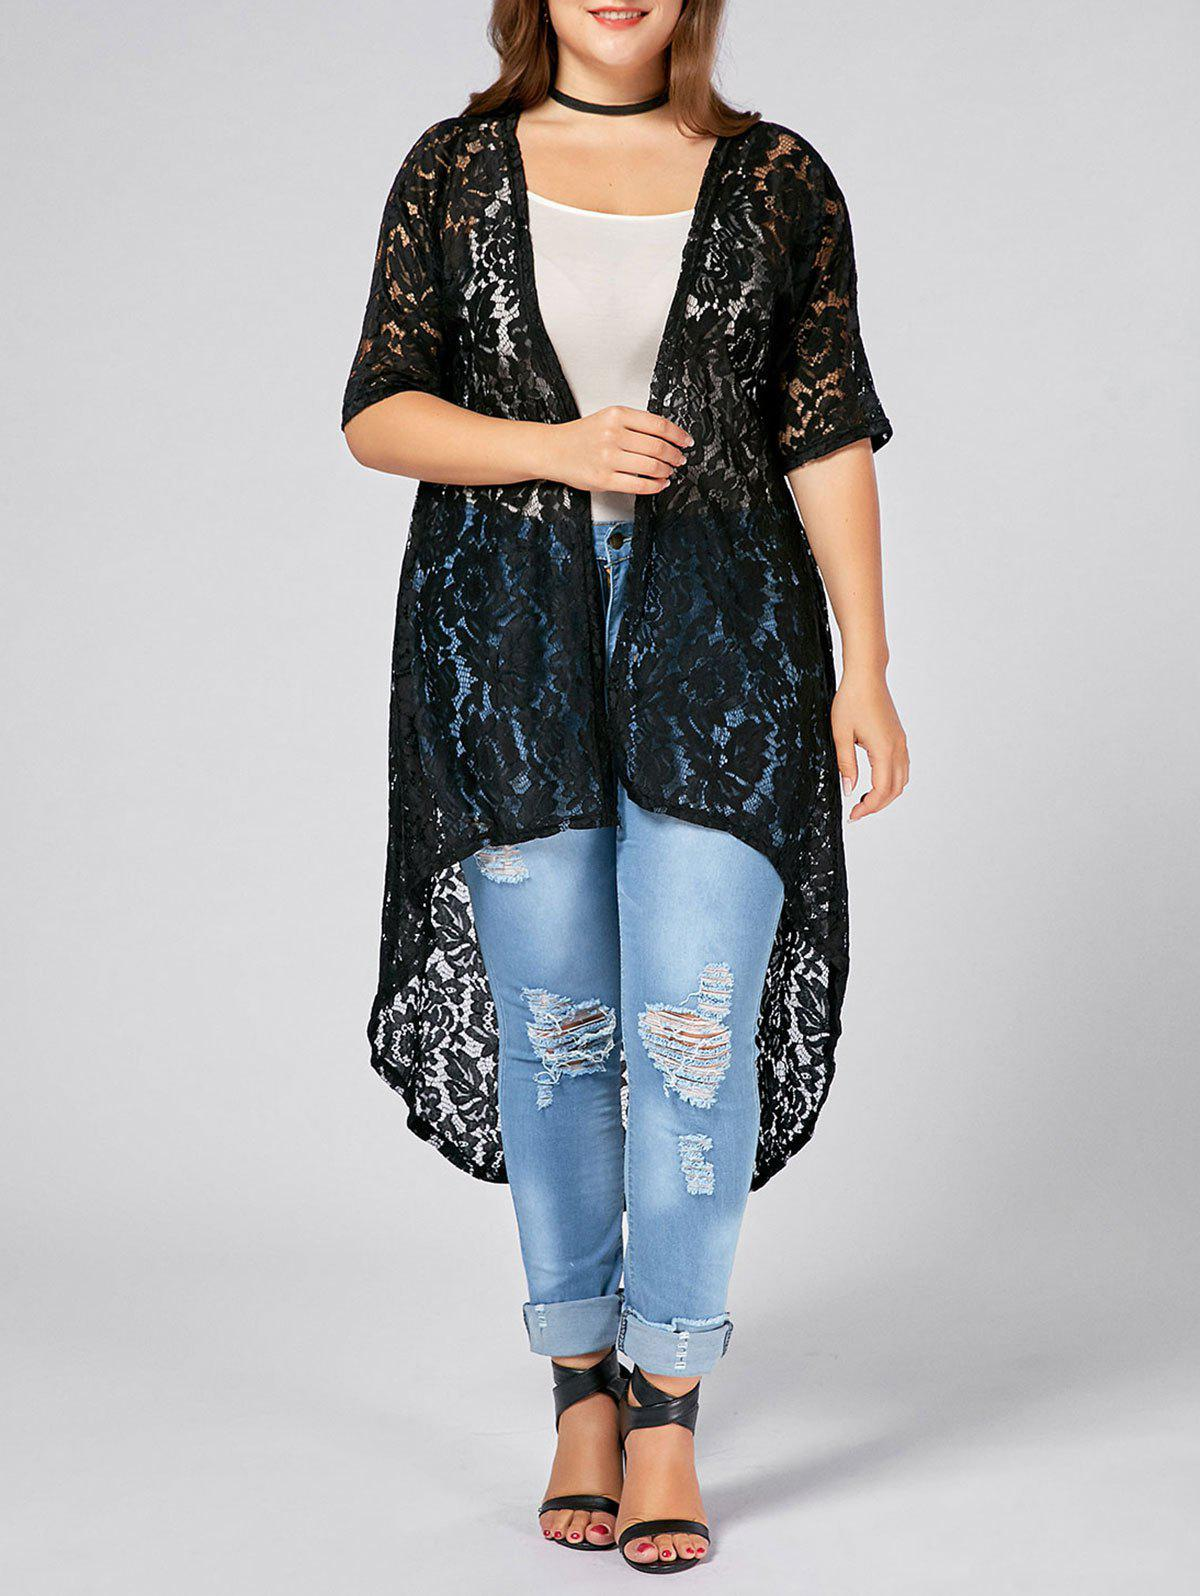 Plus Size  Long Open Front Lace Crochet CardiganWOMEN<br><br>Size: 3XL; Color: BLACK; Clothes Type: Others; Material: Cotton Blends,Polyester; Type: Asymmetric Length; Shirt Length: X-Long; Sleeve Length: Three Quarter; Collar: Collarless; Pattern Type: Solid; Embellishment: Lace; Style: Fashion; Season: Fall,Spring; Weight: 0.2700kg; Package Contents: 1 x Cardigan;